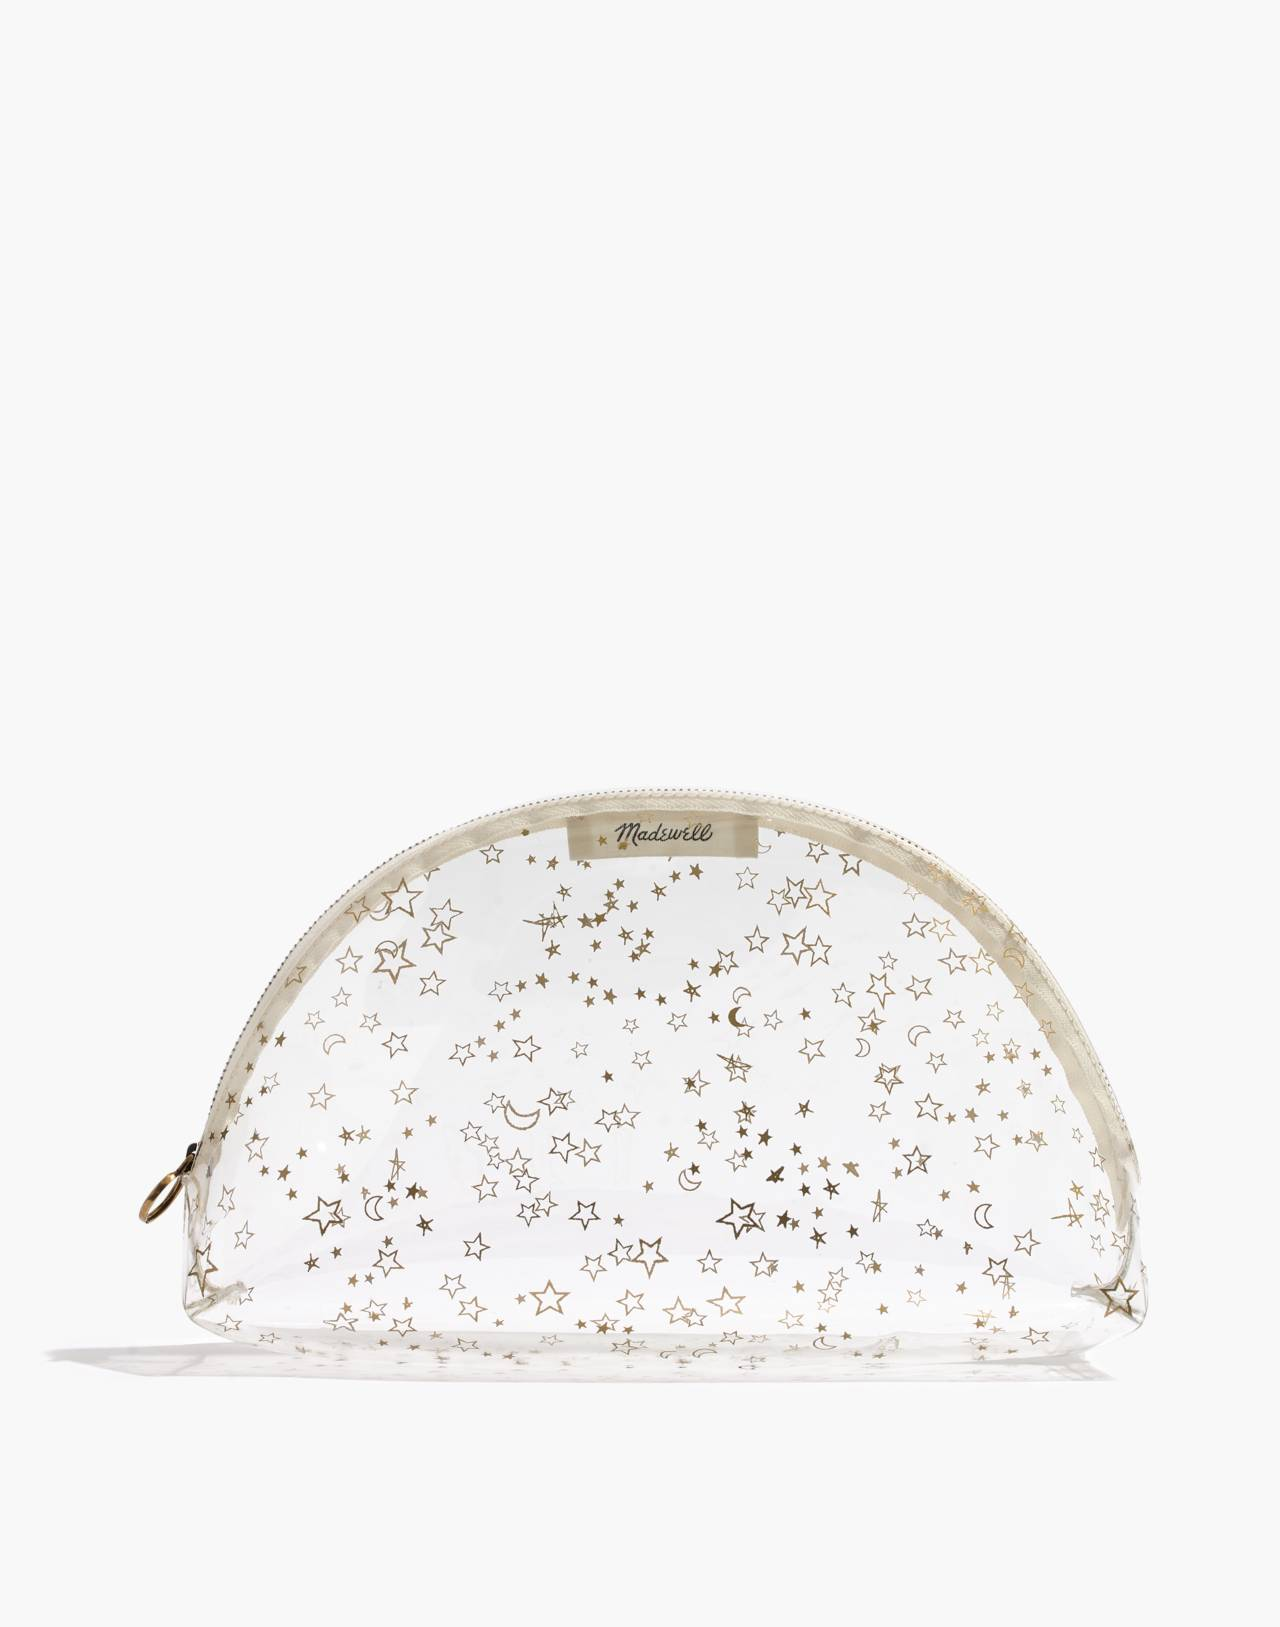 Large Crystalline Half-Moon Pouch in Starry Night in gold metallic image 1